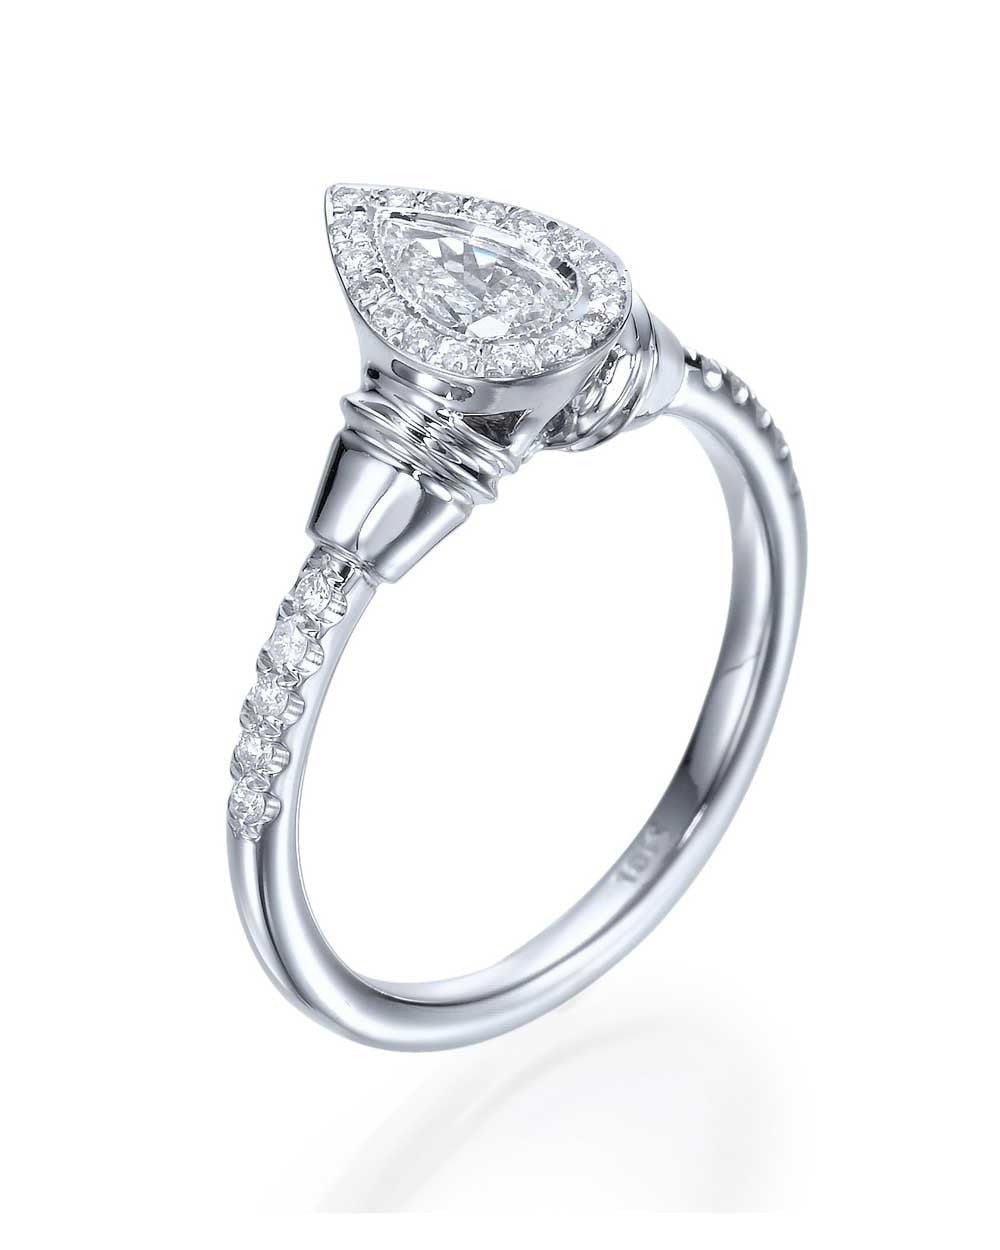 solitaire engagement stone ring byj jewelry rings carat pear cz shaped teardrop bling joy silver